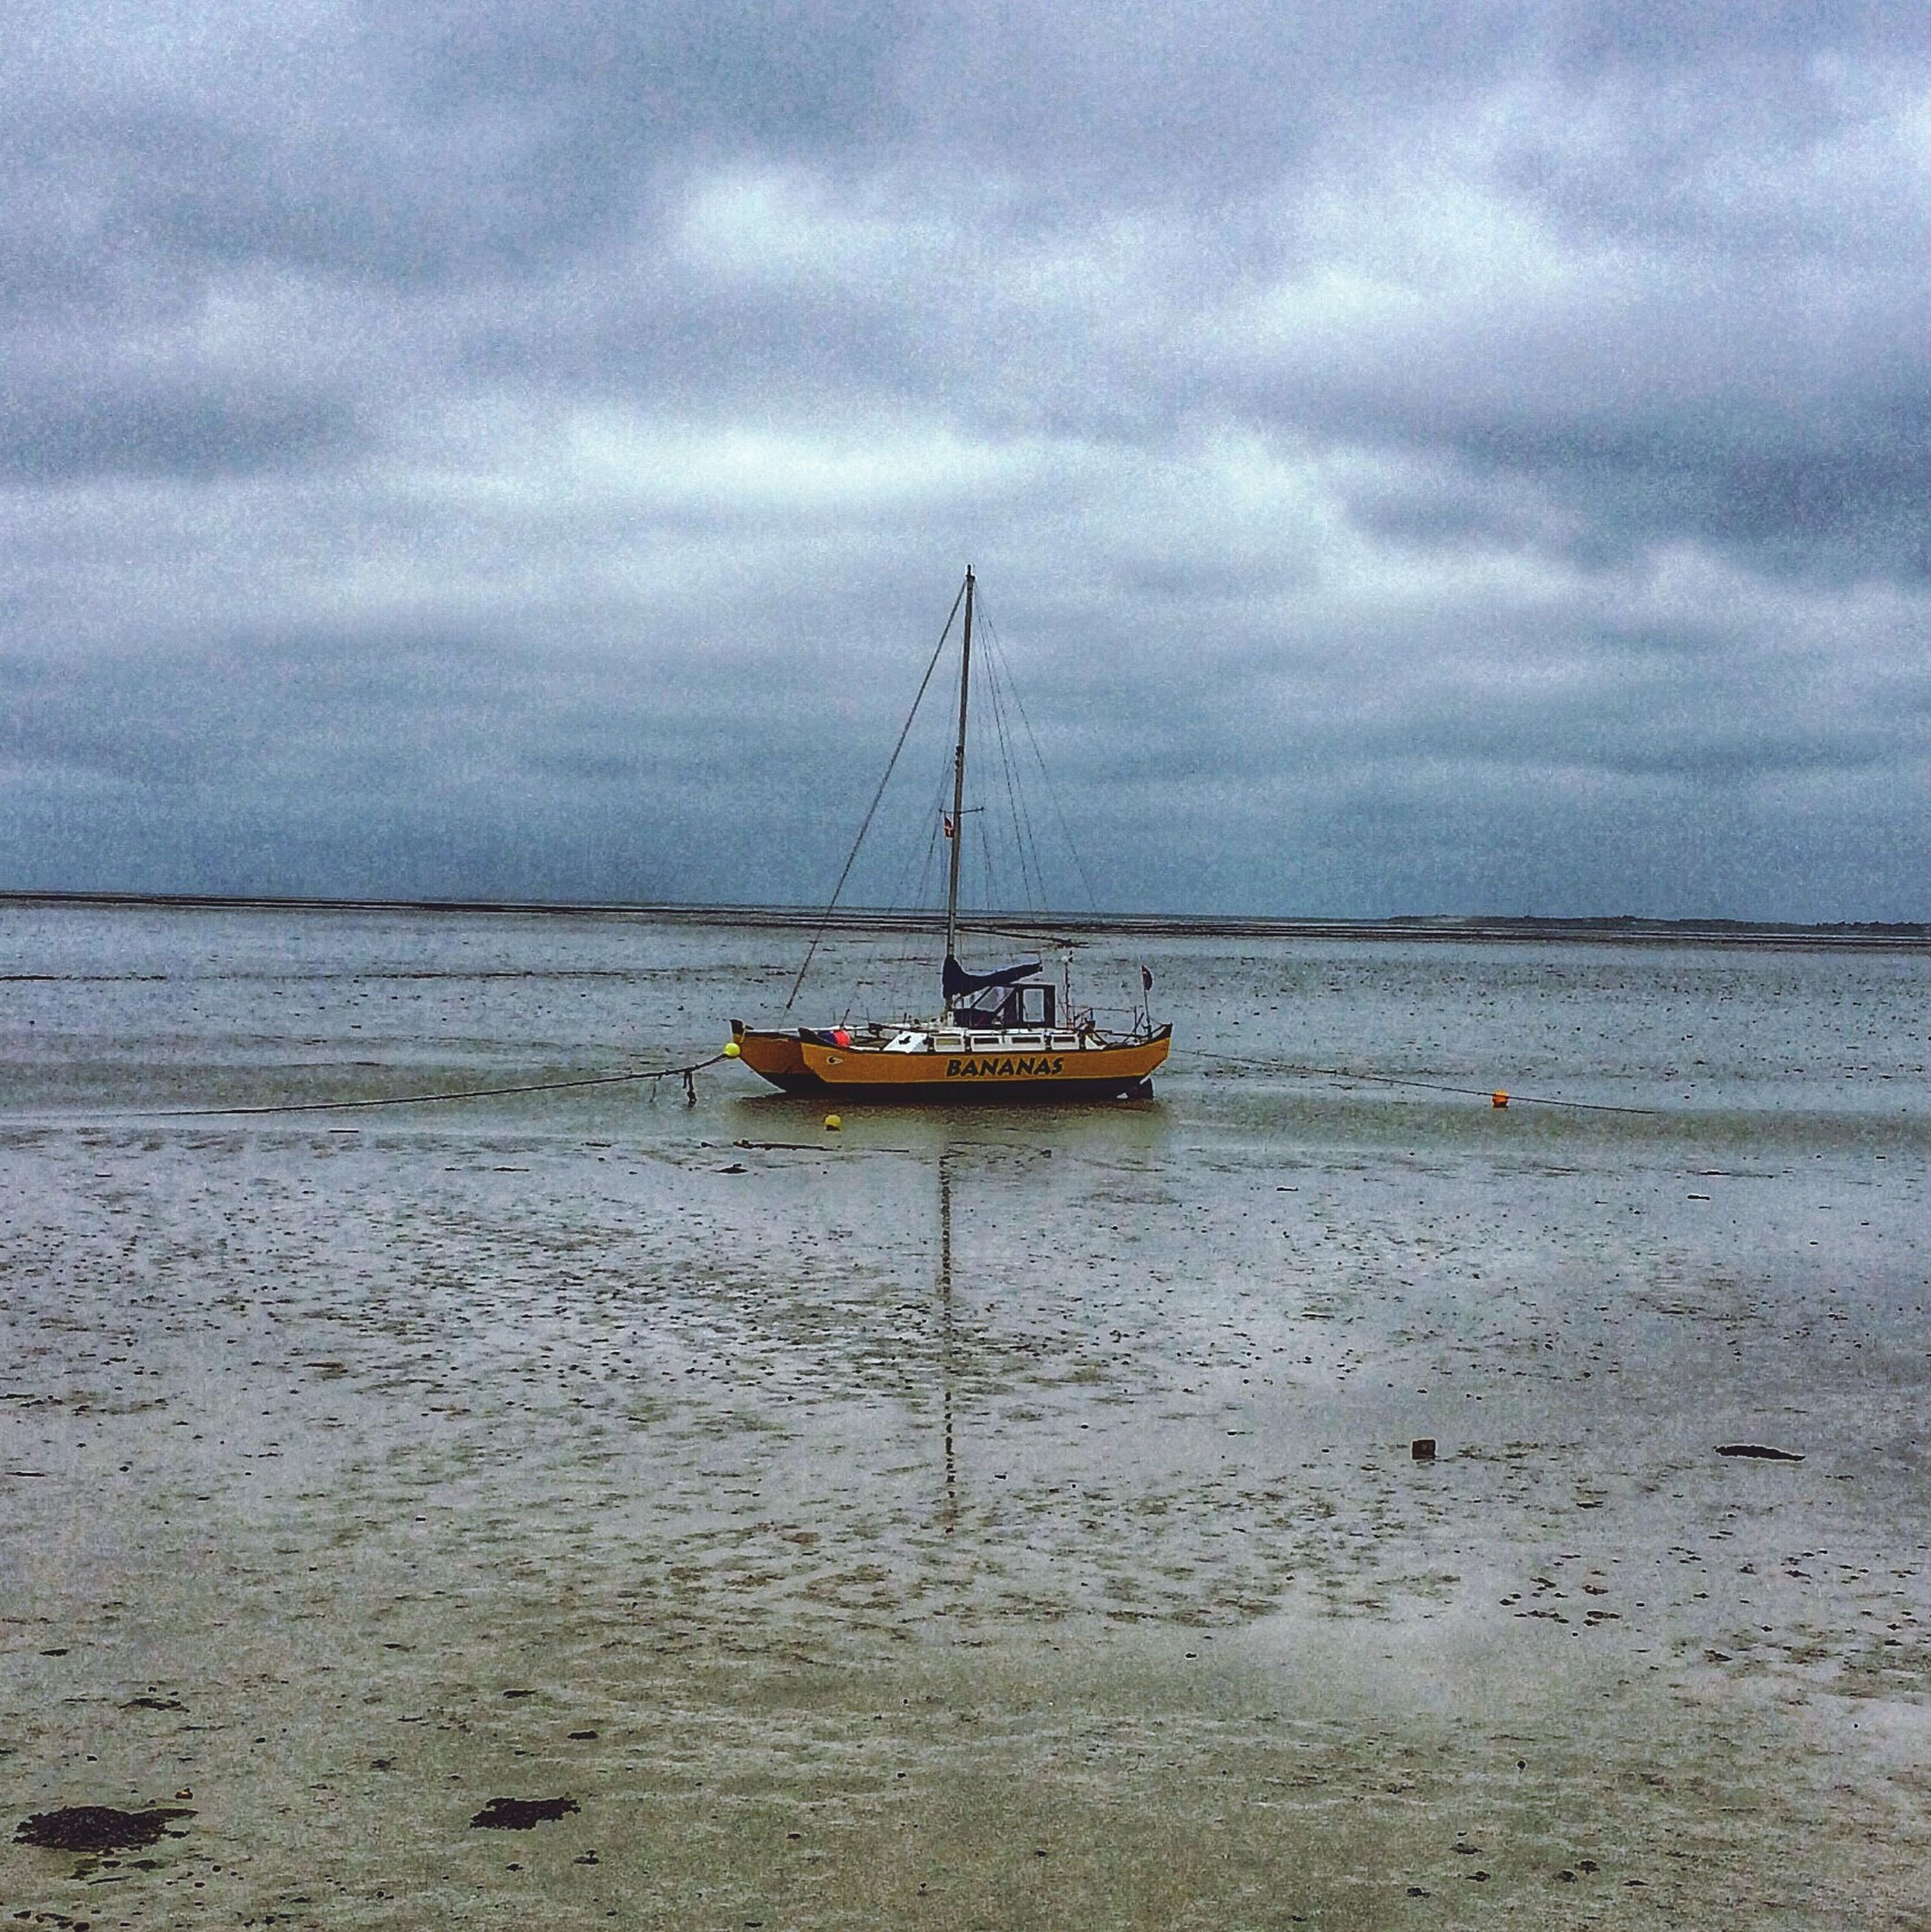 nautical vessel, water, sea, transportation, sky, boat, mode of transport, cloud - sky, horizon over water, cloudy, tranquility, beach, tranquil scene, moored, scenics, nature, beauty in nature, shore, cloud, weather